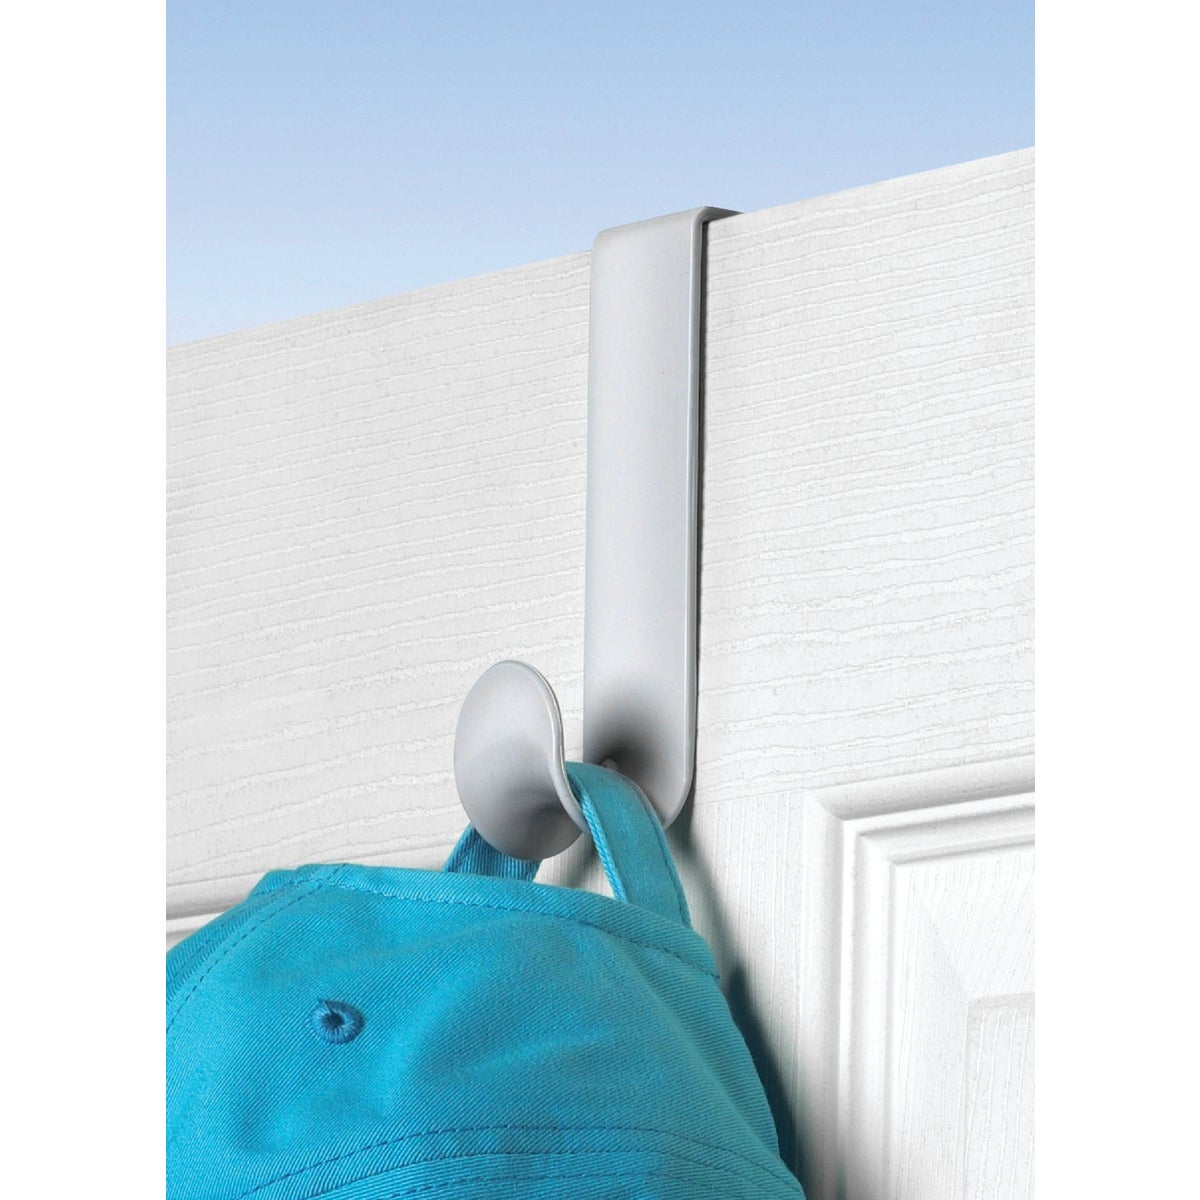 "WH 4-3/4"" OVER DOOR HOOK - 24100 by Spectrum Diversified"